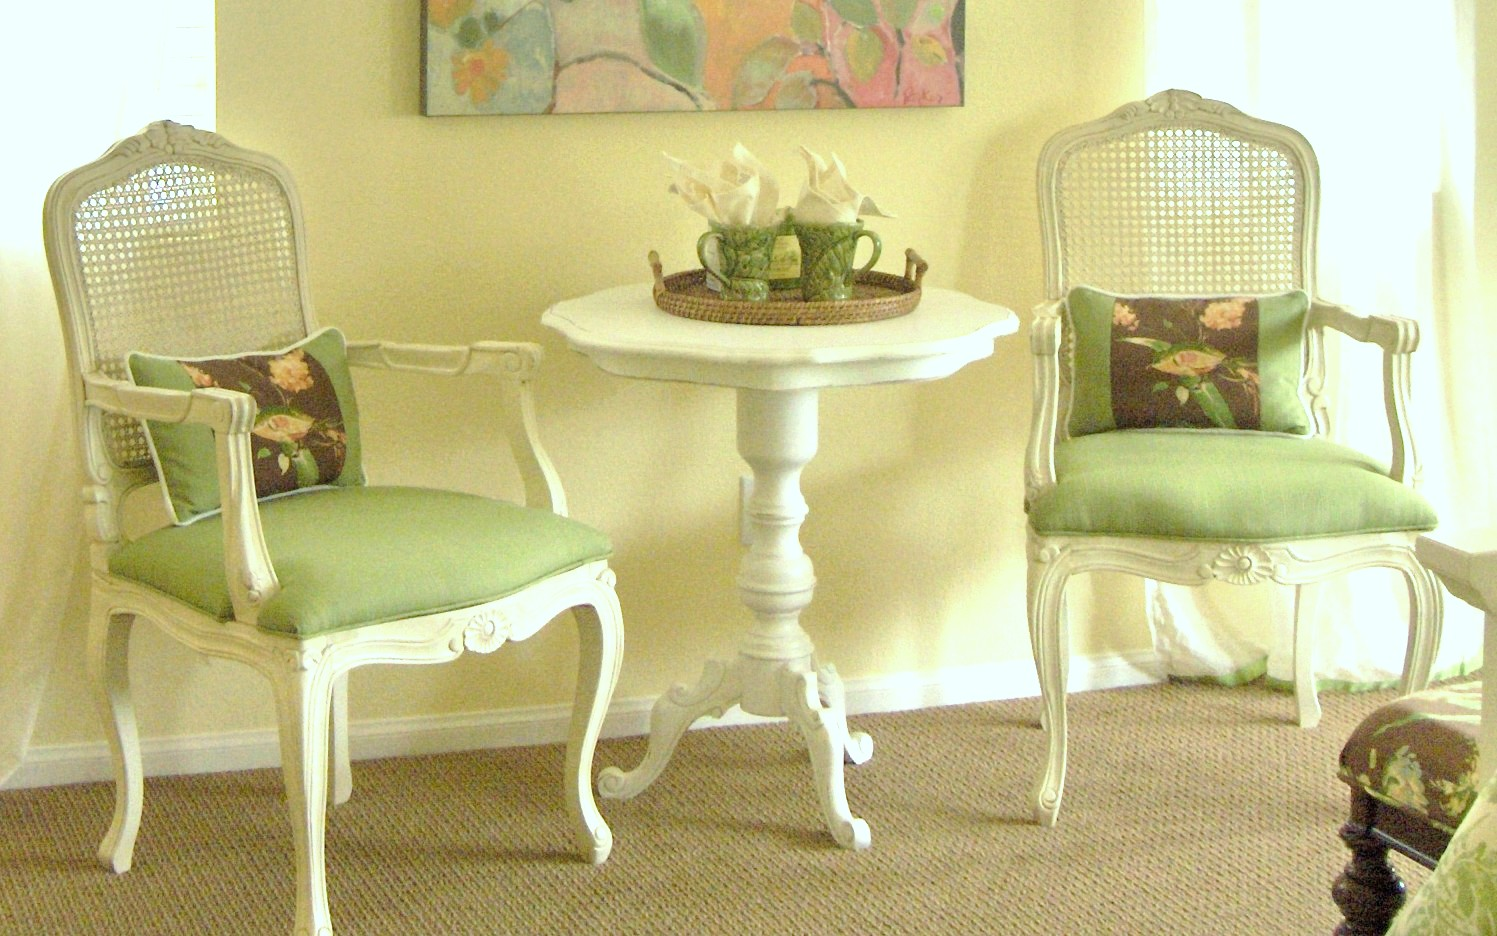 Five Great Reasons to Reuse Furniture - What's Old Is New Again…. Refurbish And Recycle! Sophia La Marca